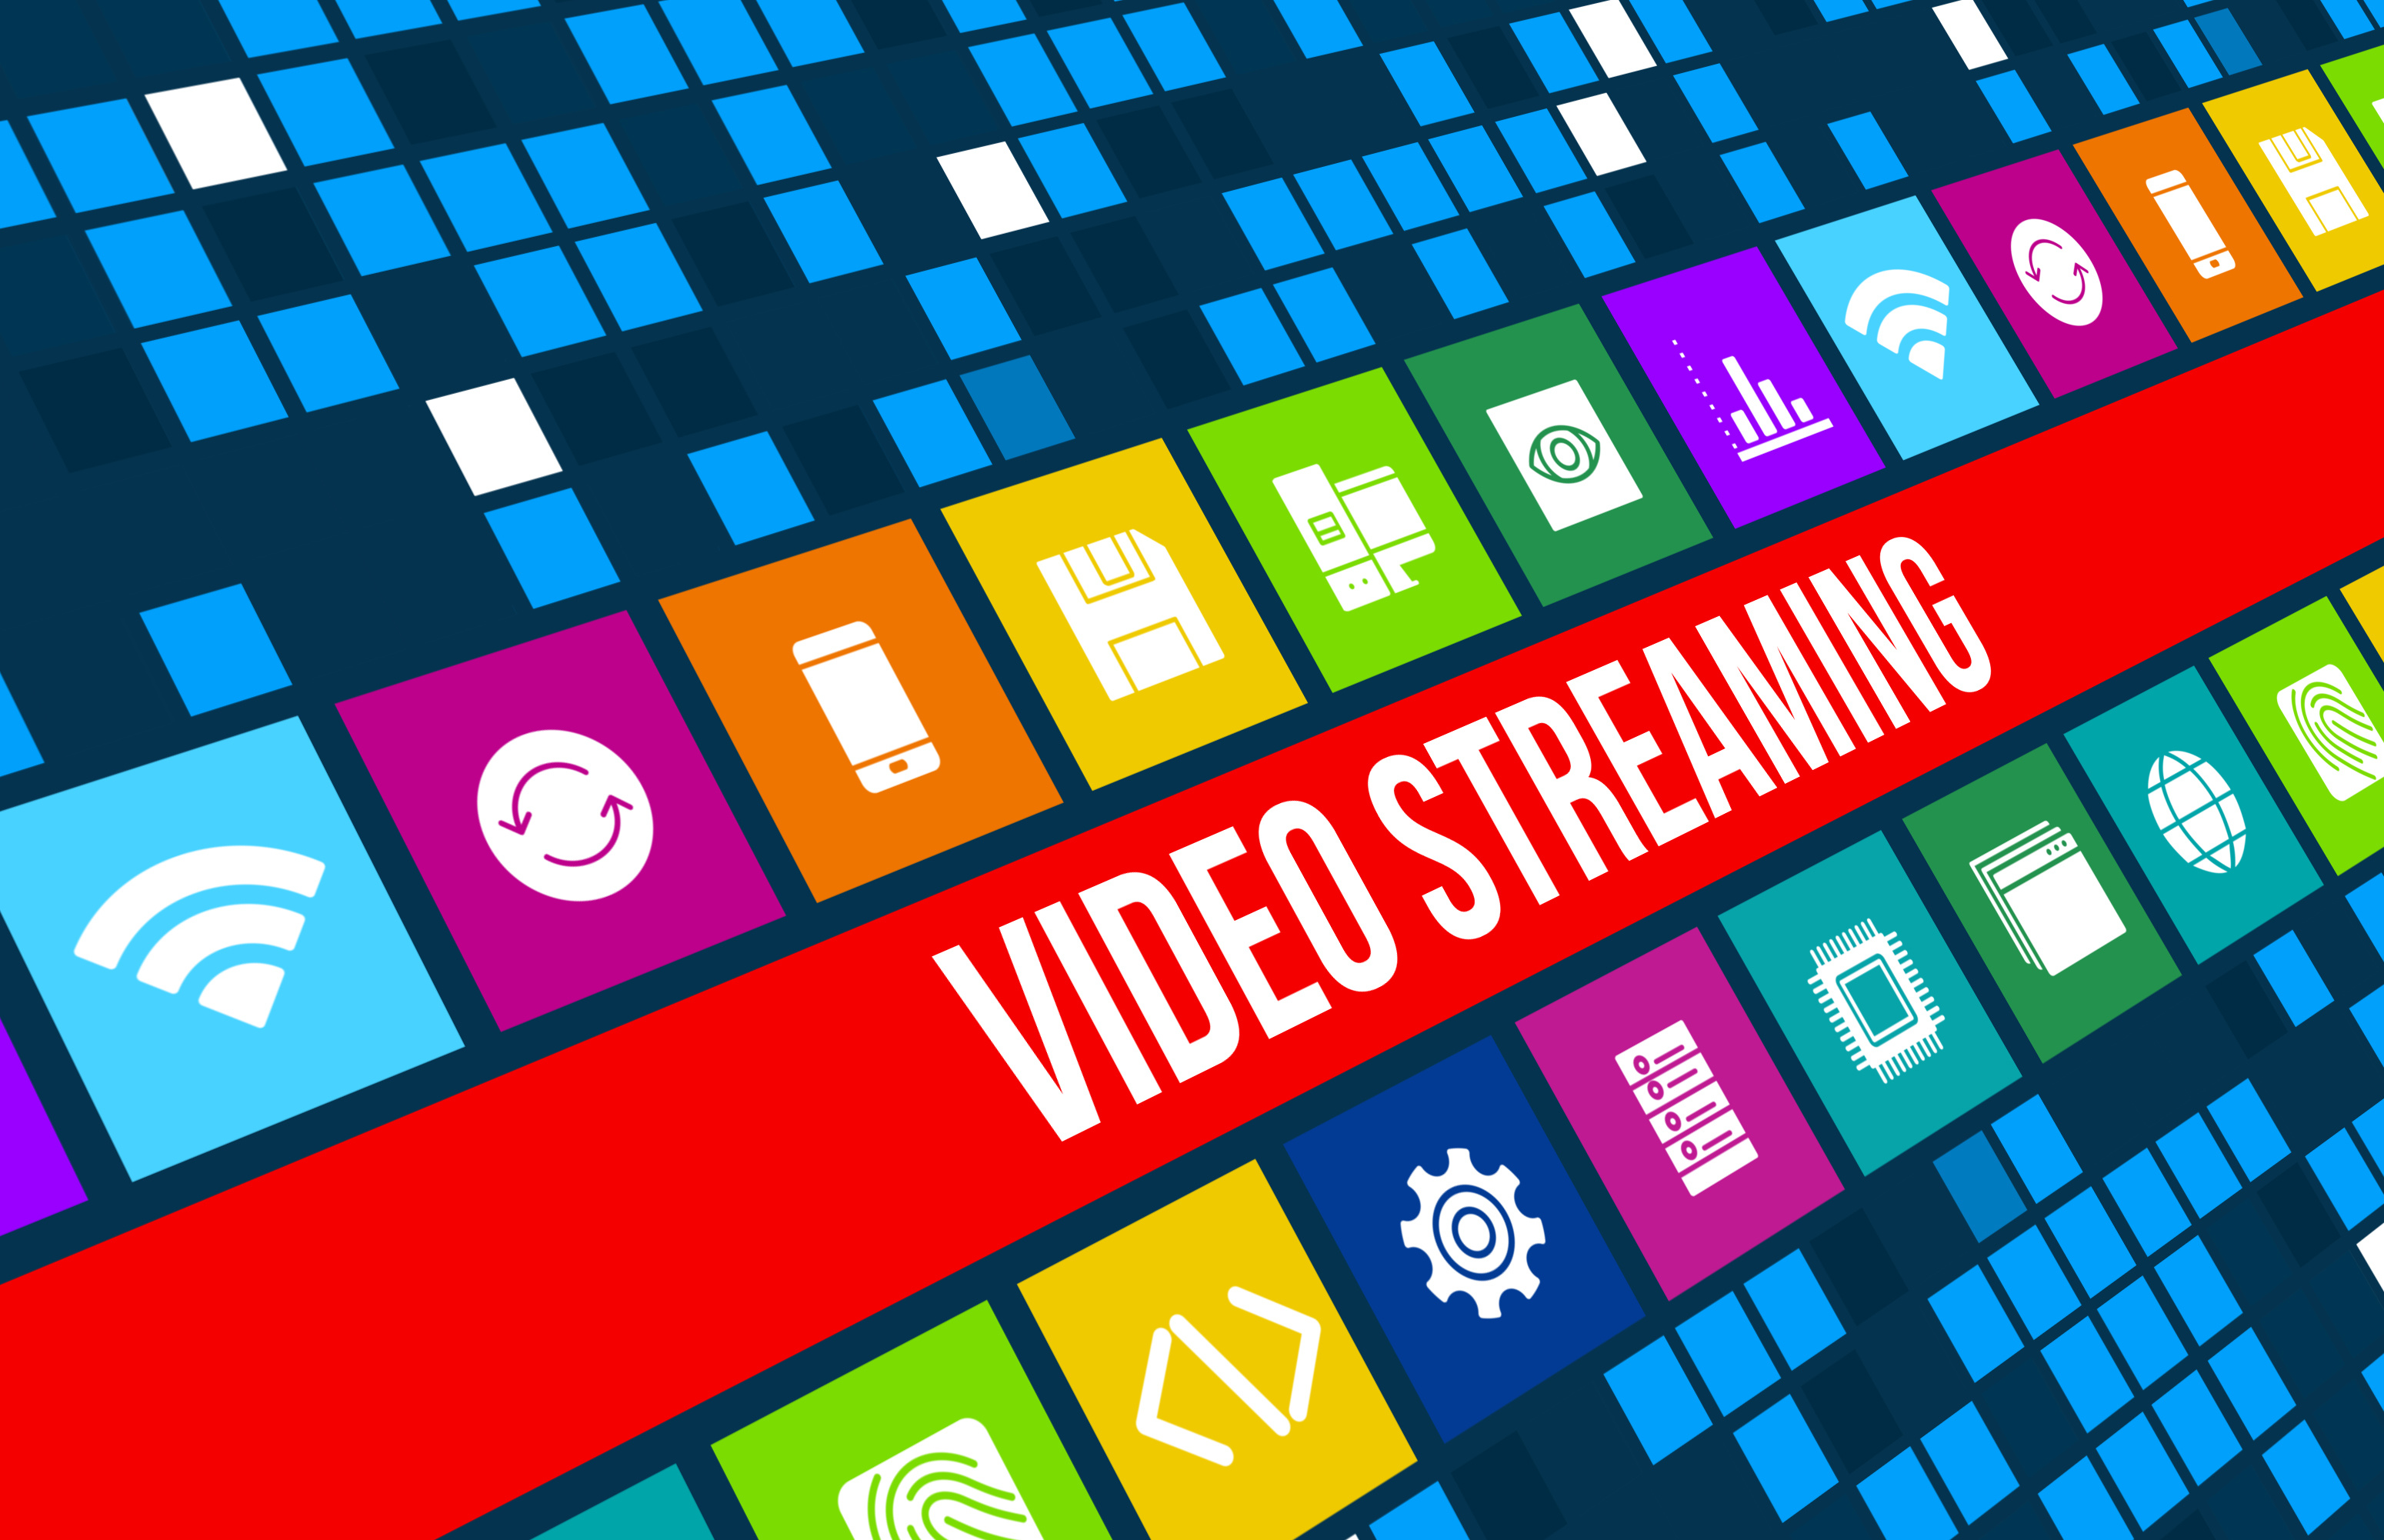 Video Streaming concept image with business icons and